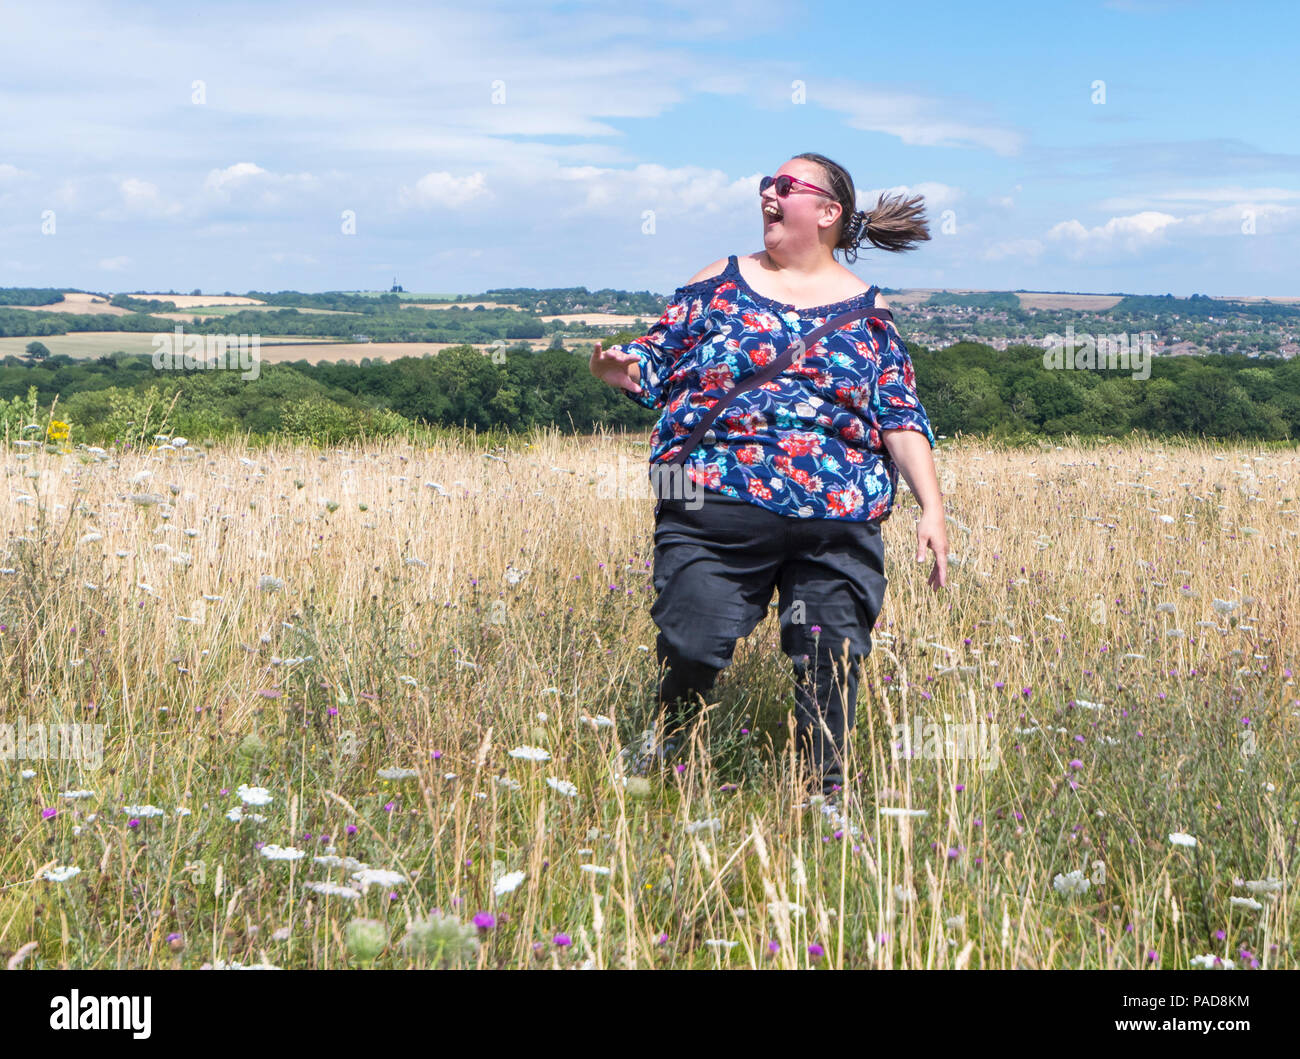 Young woman jumps and runs around a meadow in the British countryside on a hot day in the July 2018 heatwave at Highdown Hill, West Sussex, England, UK. Happiness concept. Being happy concept. Jumping with joy concept. - Stock Image